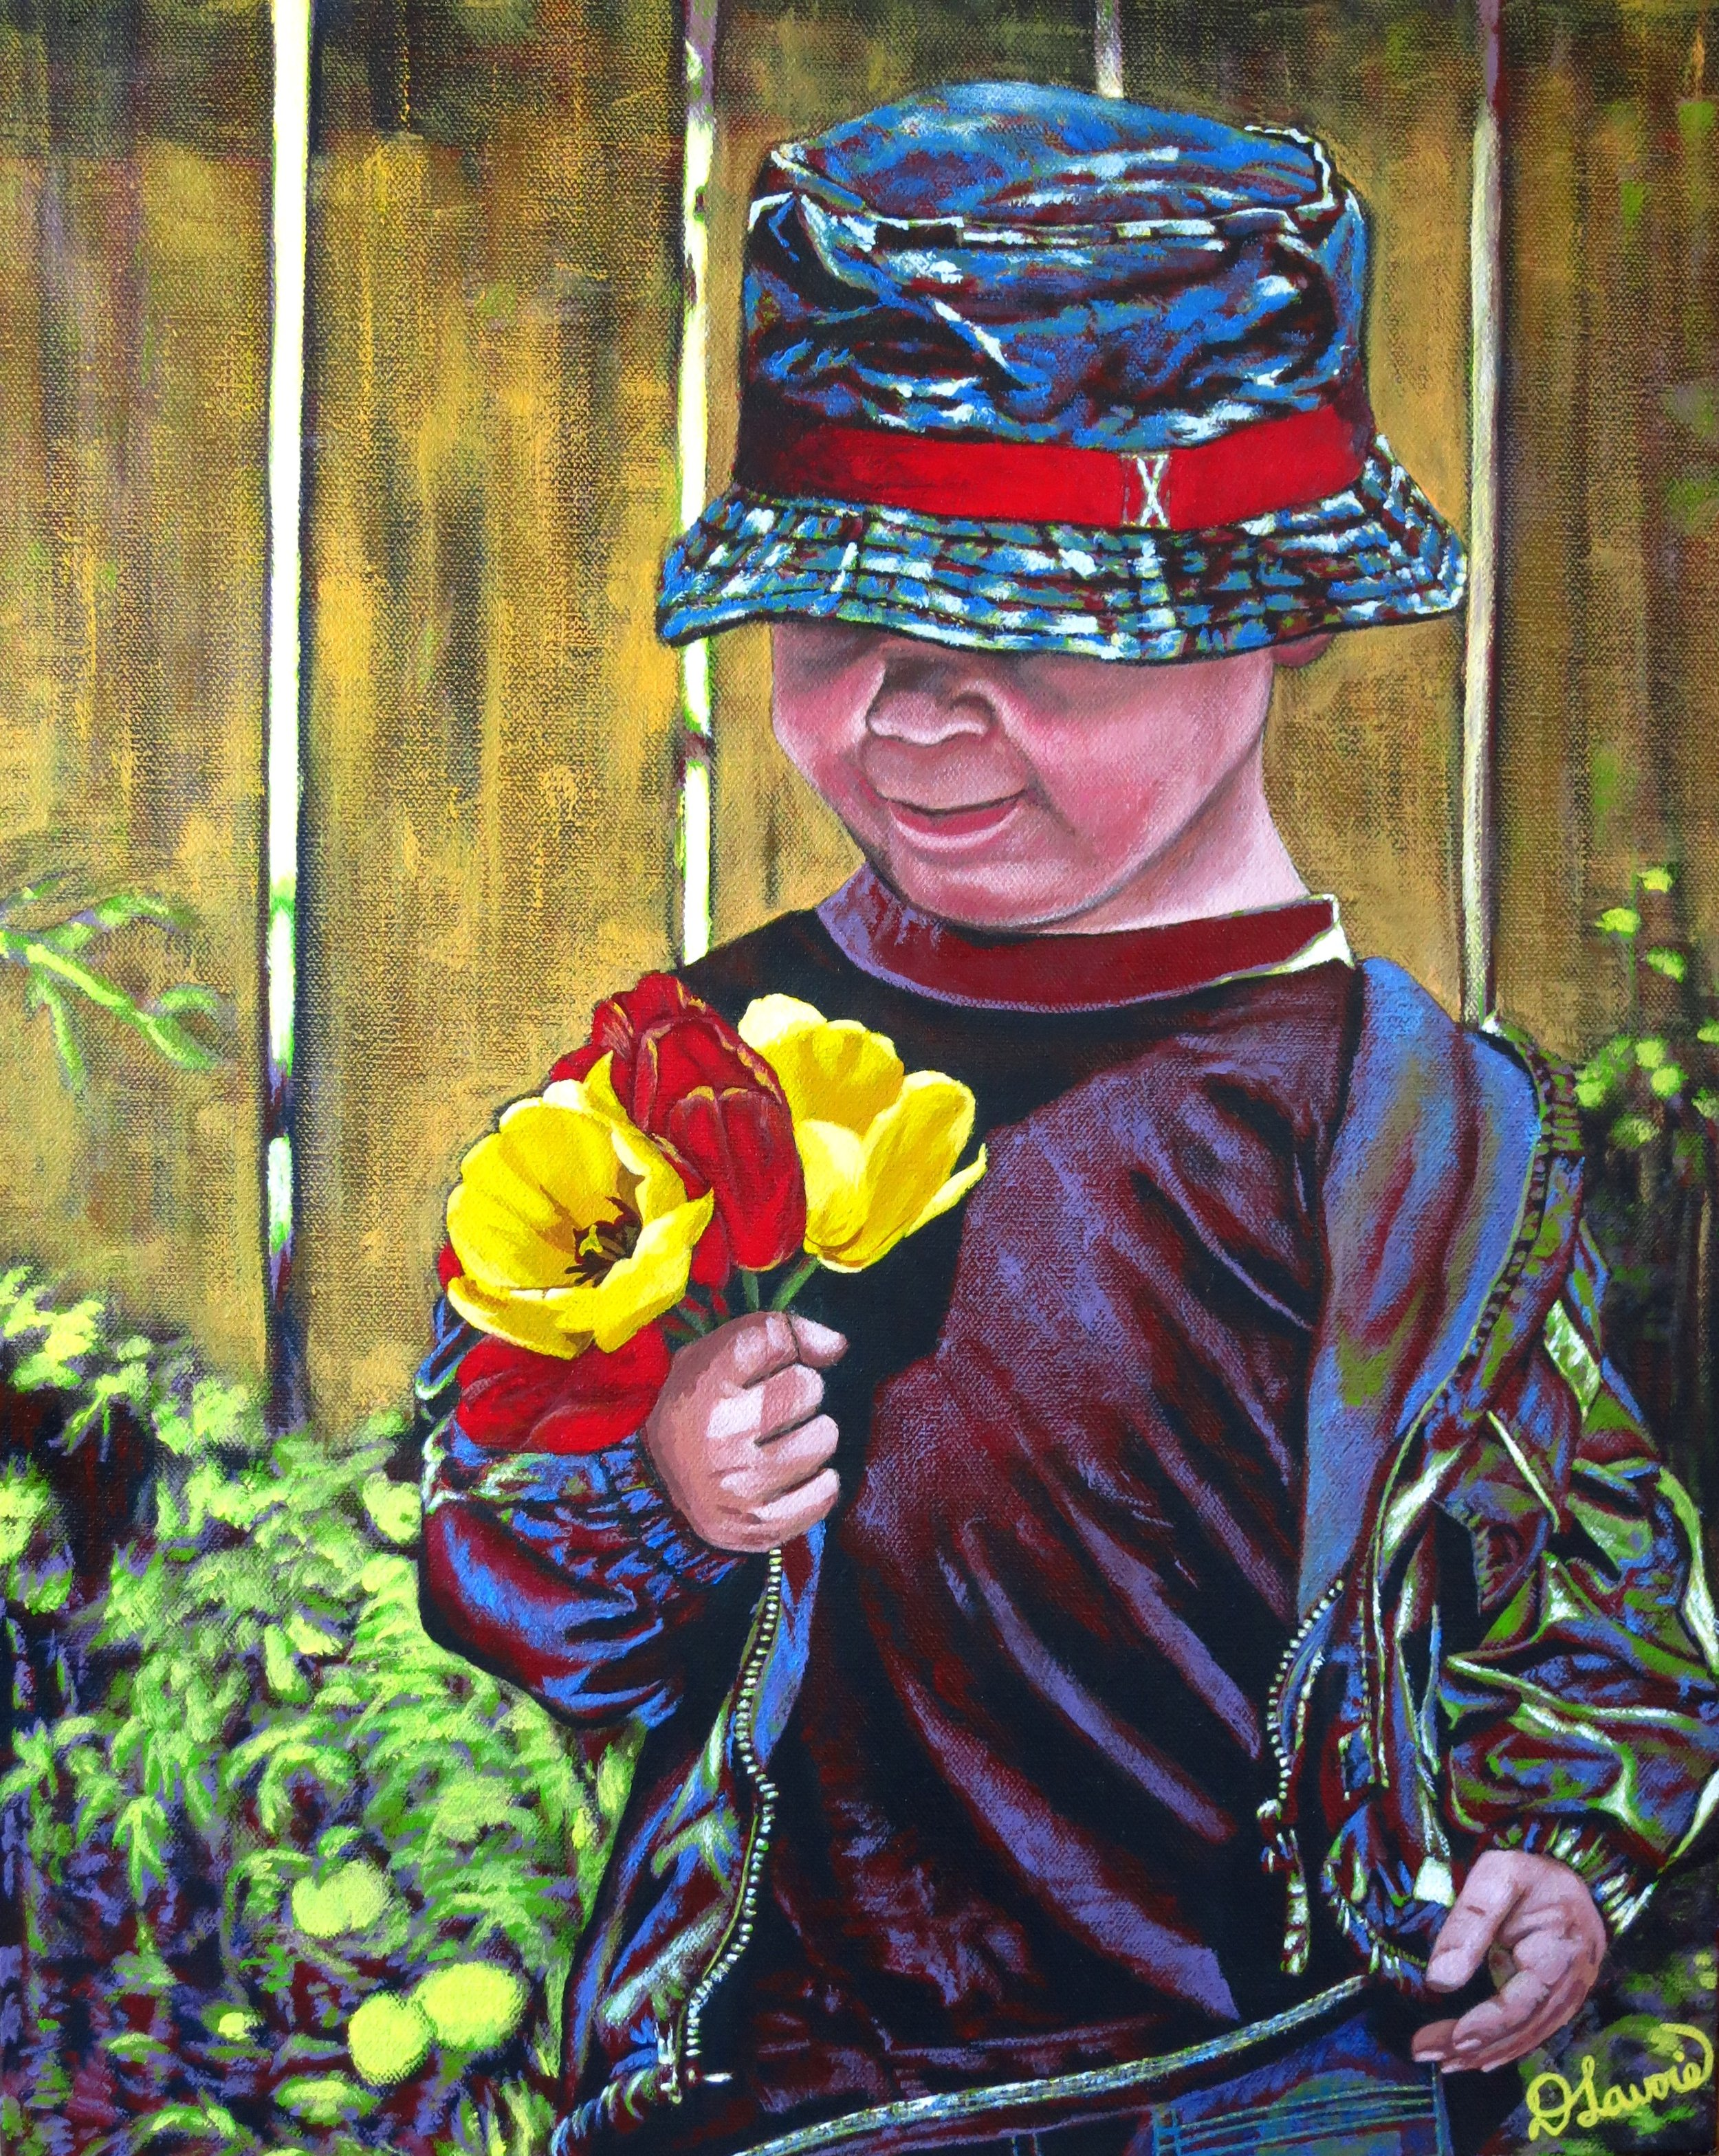 """Mom is Going to Love These   Acrylic on Canvas - 20"""" x 16""""    Both the original and limited edition prints are available.   The painting, Mom is Going to Love These, pertains to that moment when you decide to enjoy your child's free spirit and revel in all its glory rather than think about the now short stemmed tulips no longer in the garden.The playful colours vibrate to mimic a child's imagination and sense of wonder. Children have so much to teach us."""